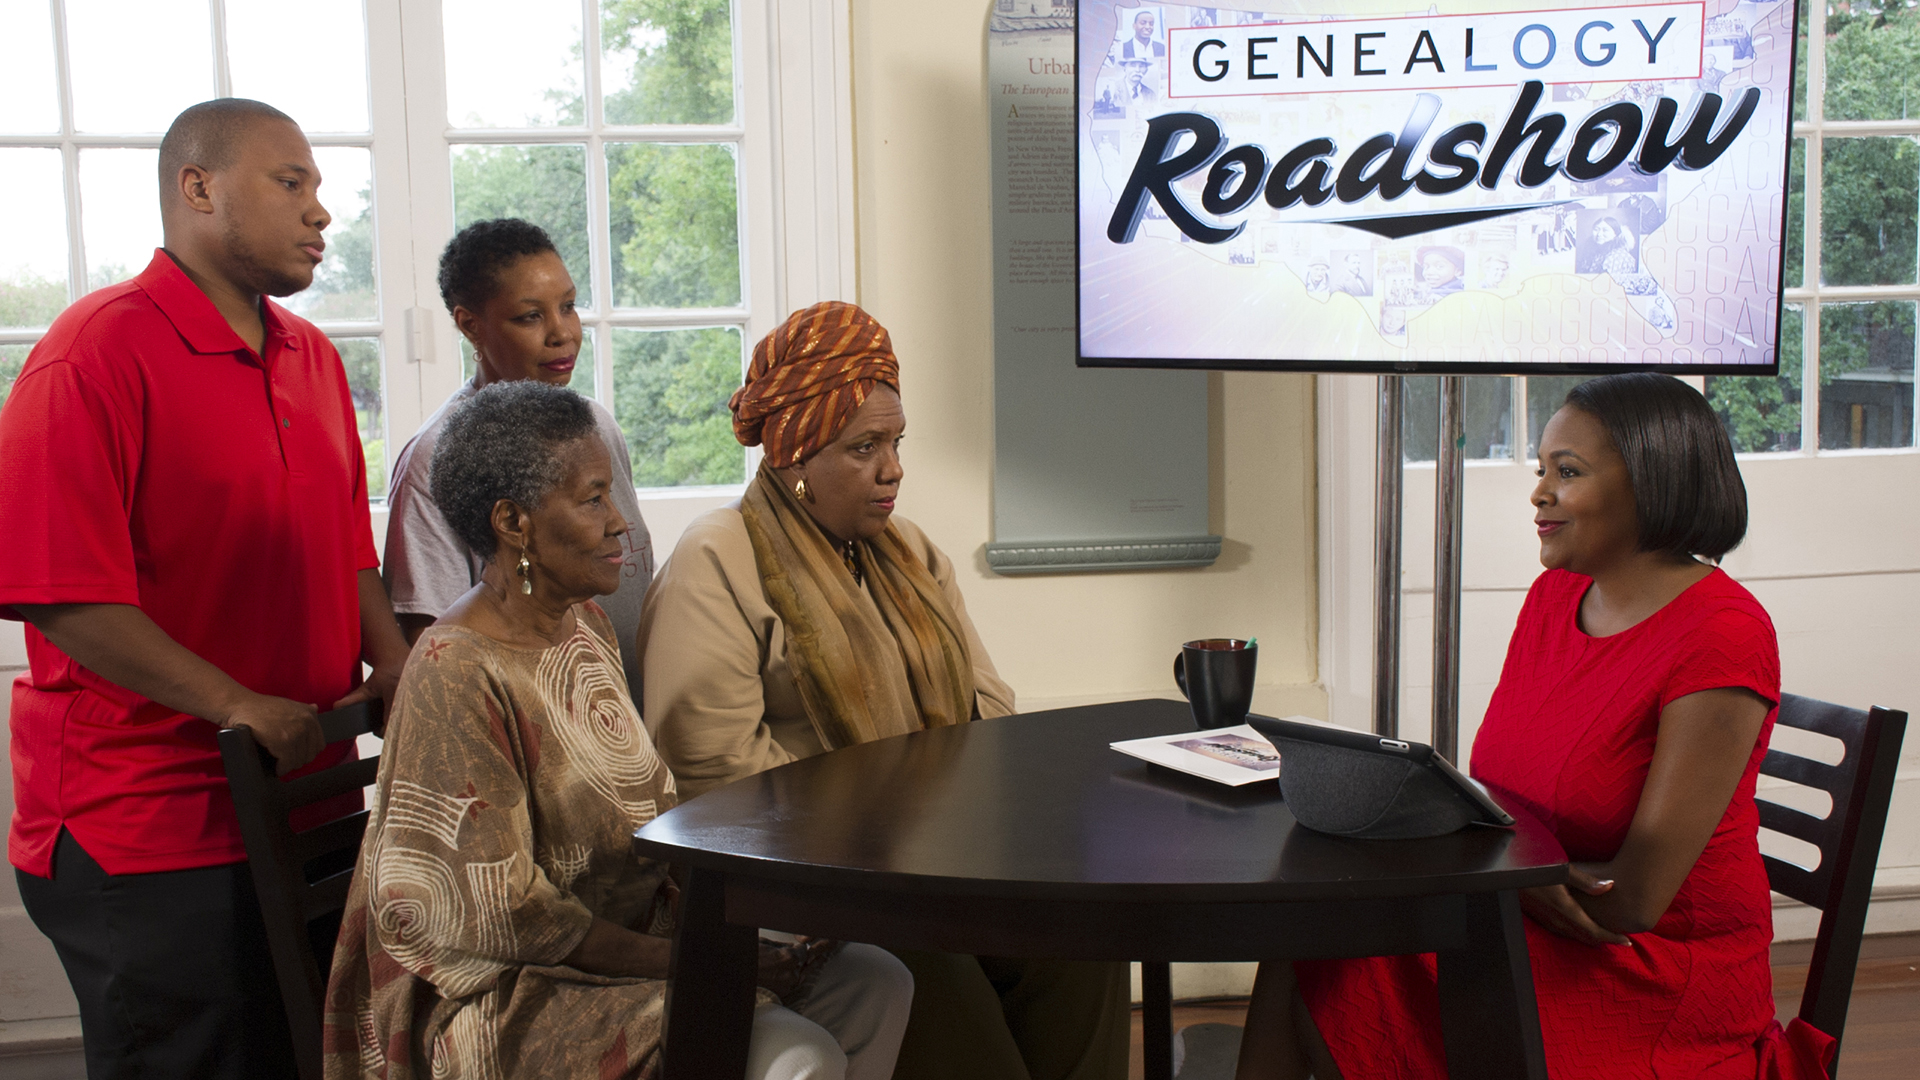 A scene from Genealogy Roadshow with Kenyatta D. Berry.